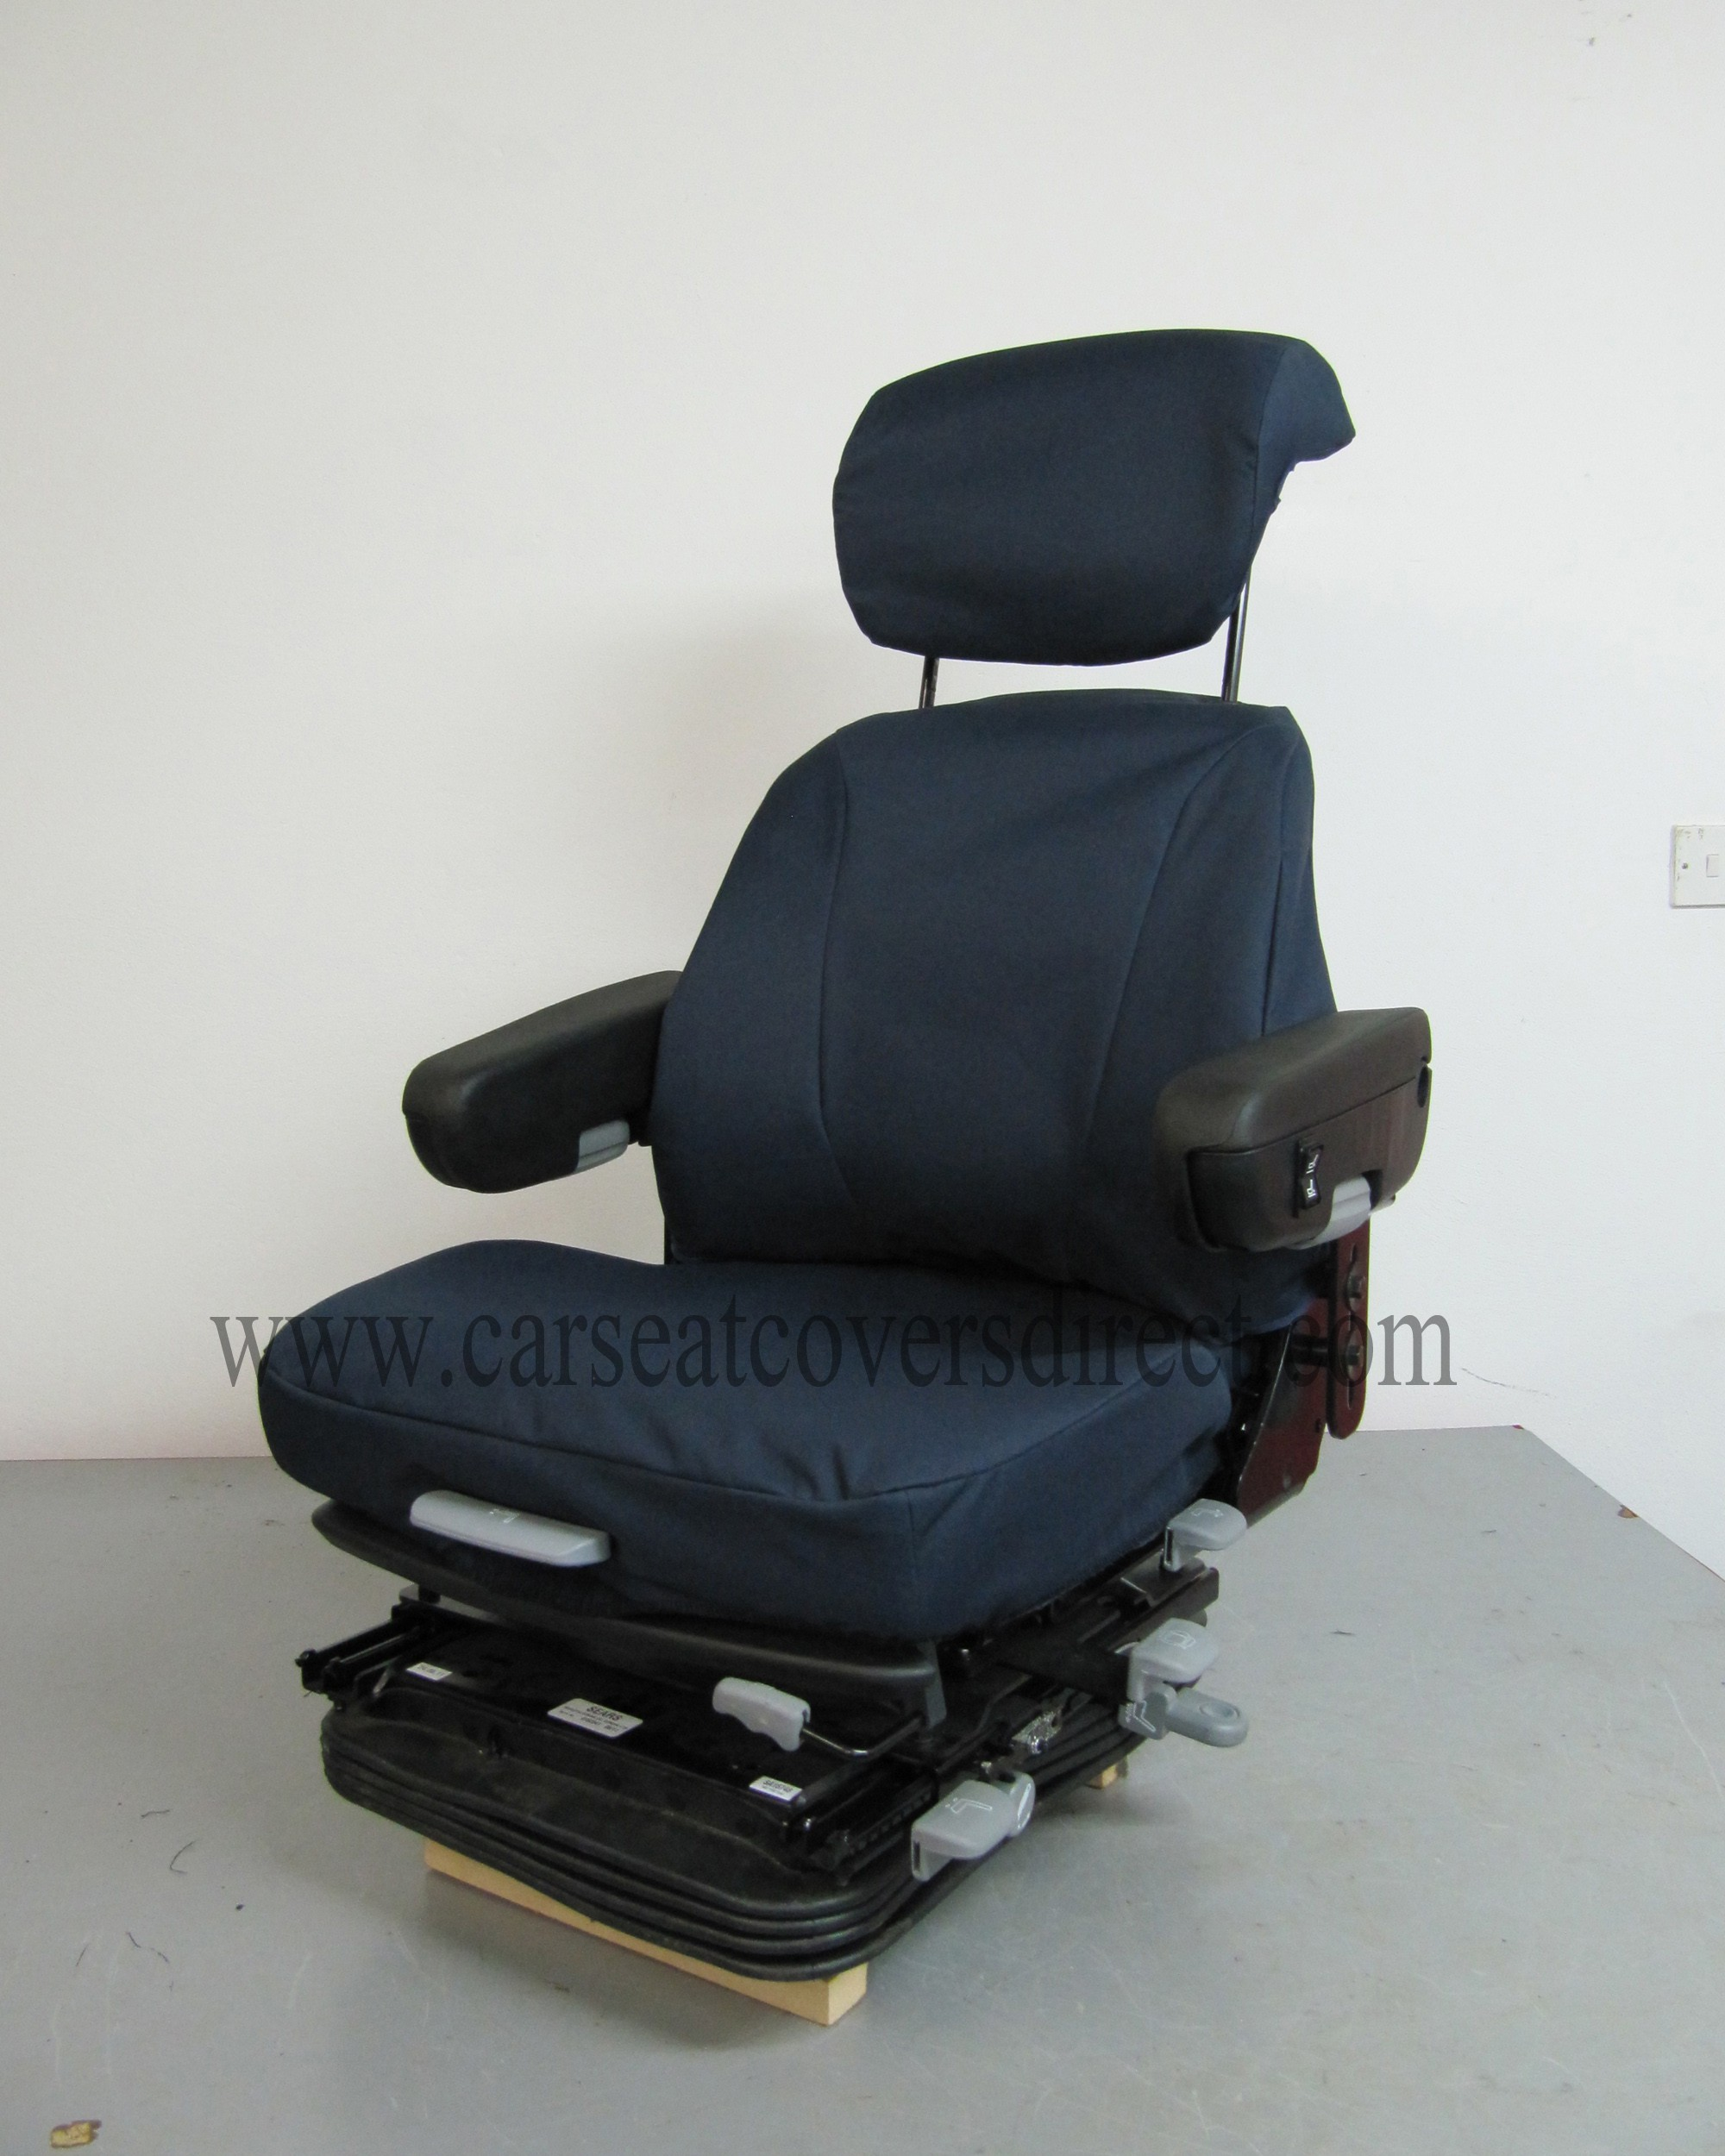 Tractor Seat Tn65 : New holland tractor seat cover music search engine at